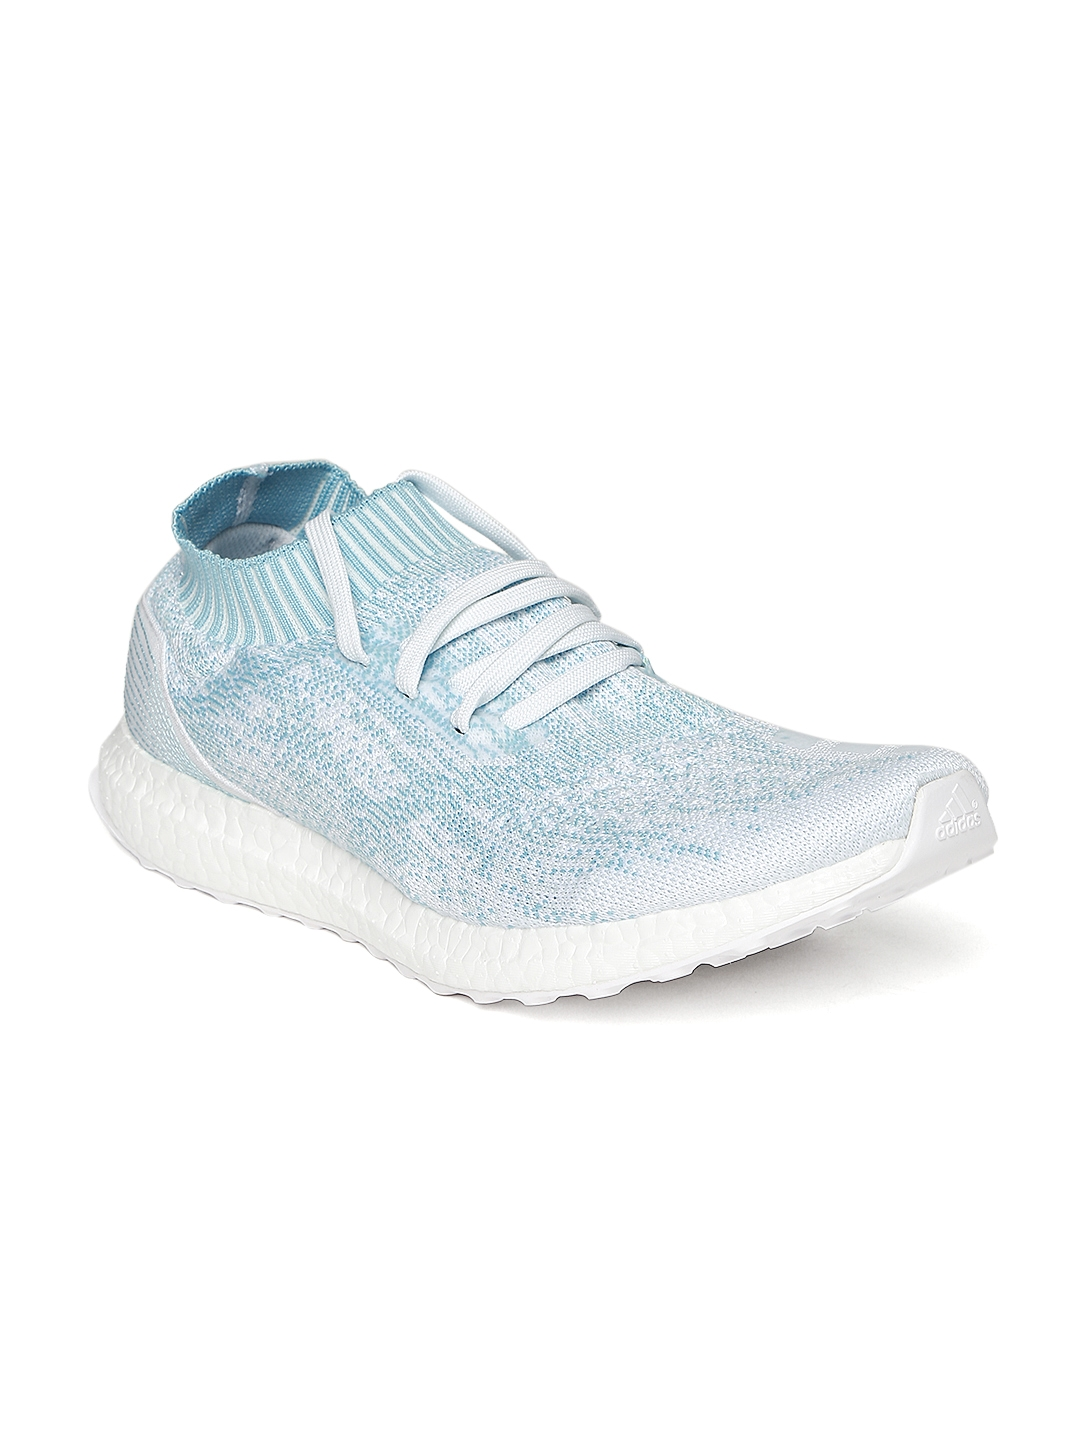 1ea36e091d2 Buy ADIDAS Men Blue Ultraboost Uncaged Parley Running Shoes - Sports ...